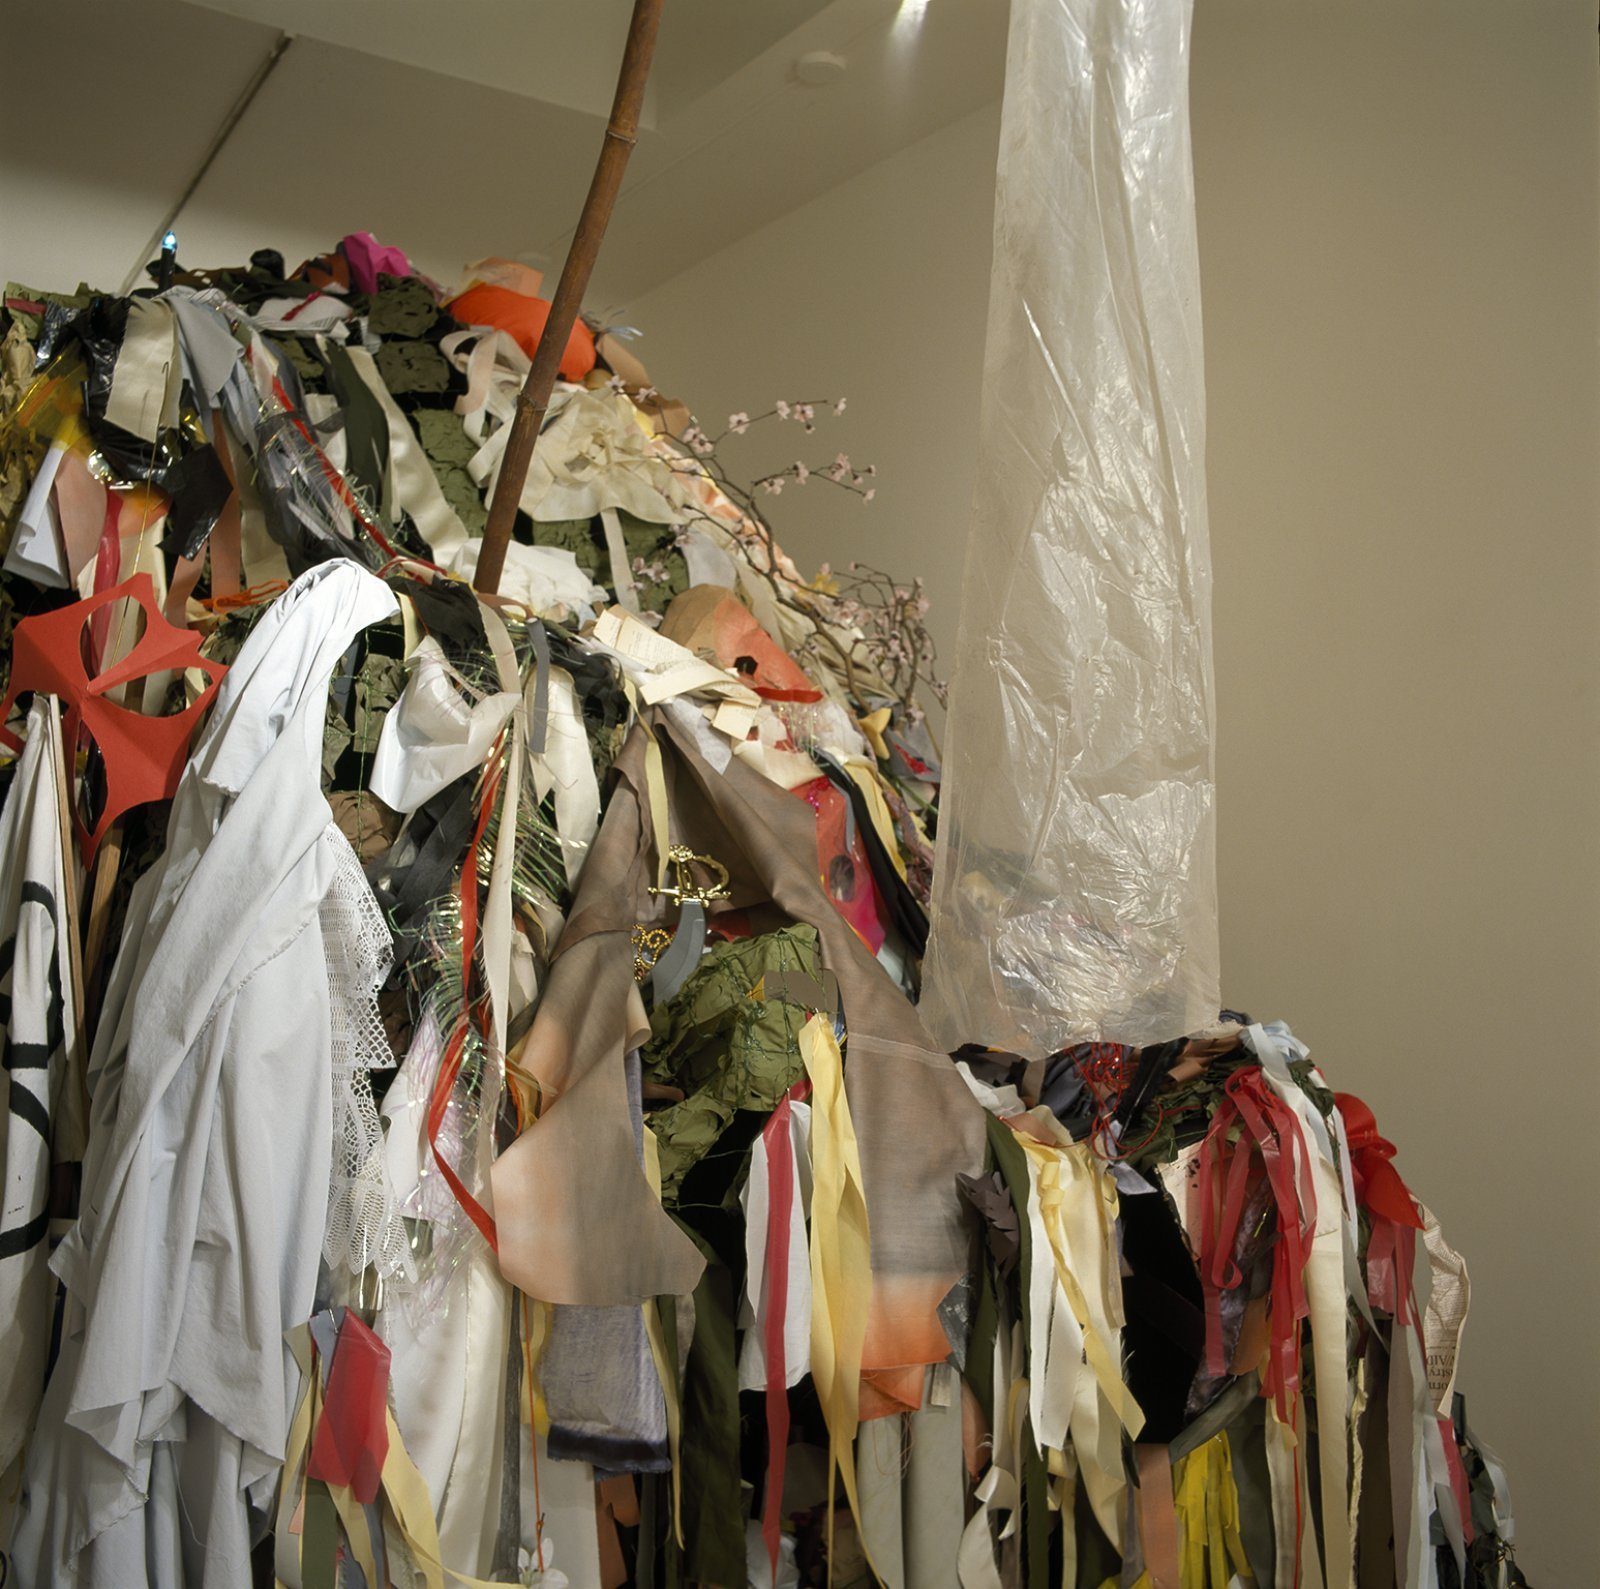 Geoffrey Farmer,Every surface in someway decorated, altered, or changed forever (except the float), 2004, mixed media, dimensions variable